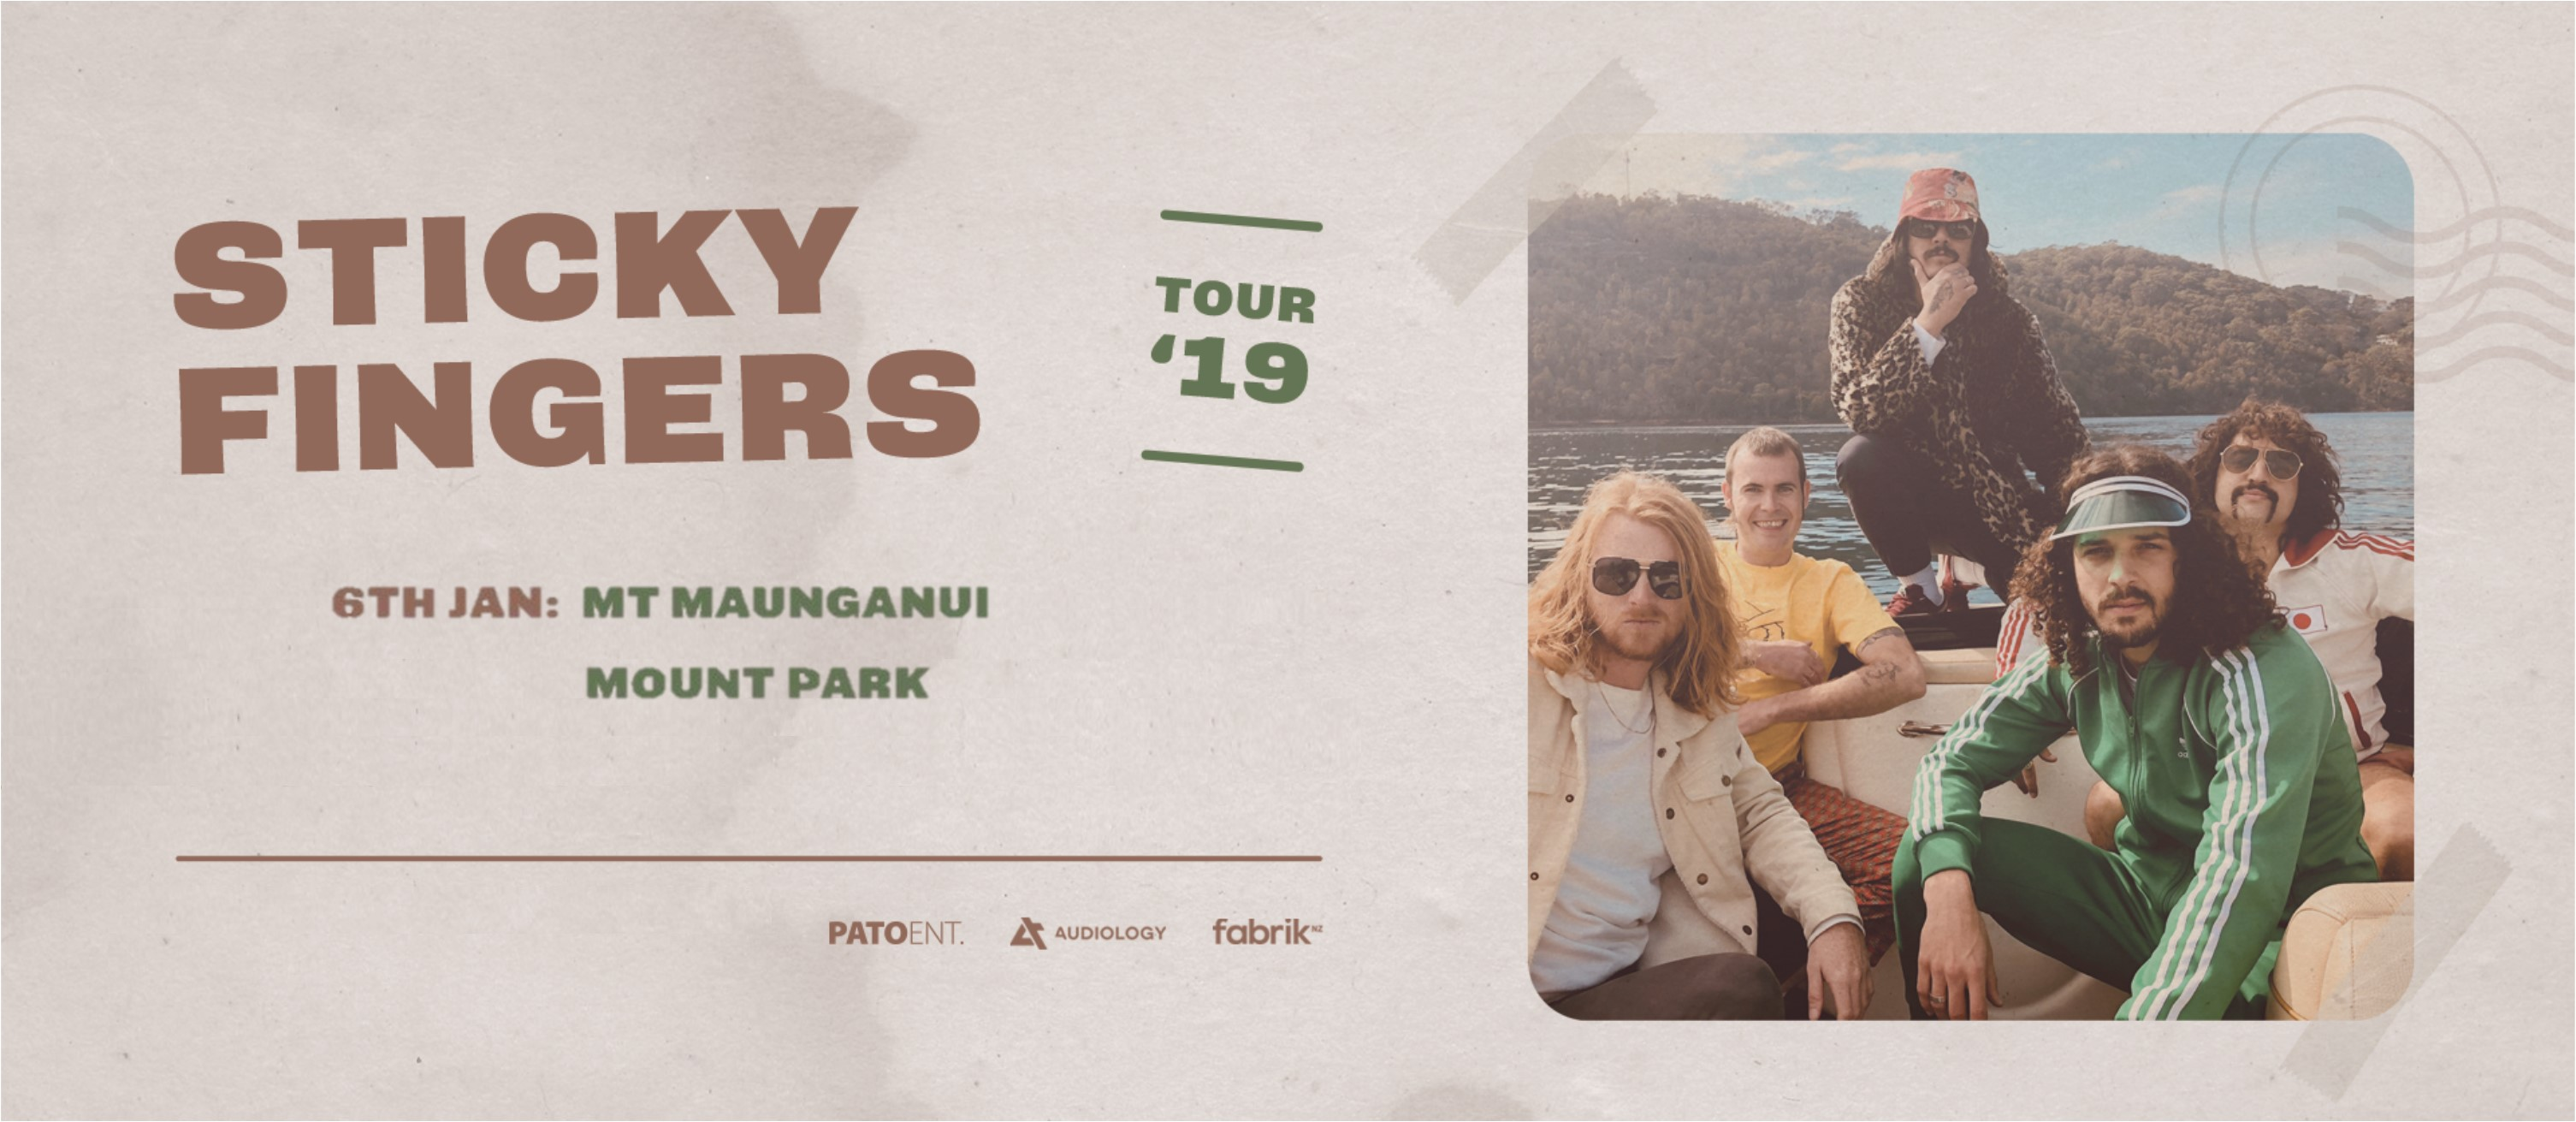 Tickets for STICKY FINGERS - Mt. Maunganui in Mount Maunganui from Ticketspace